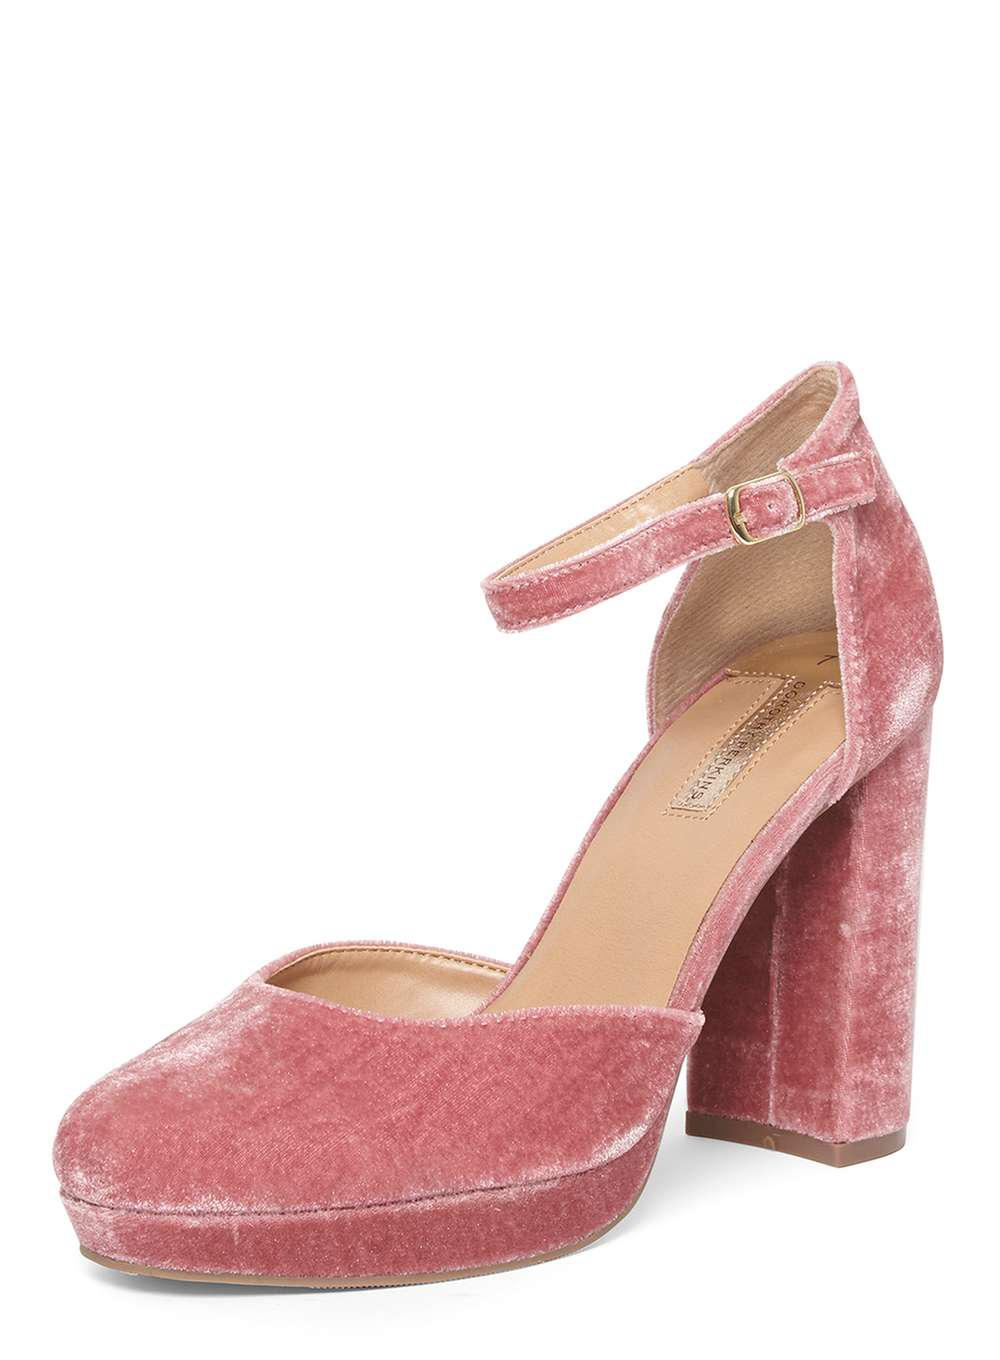 1581cb8b809 Dorothy Perkins Blush Velvet 'gabrielle' Court Shoes in Pink - Lyst